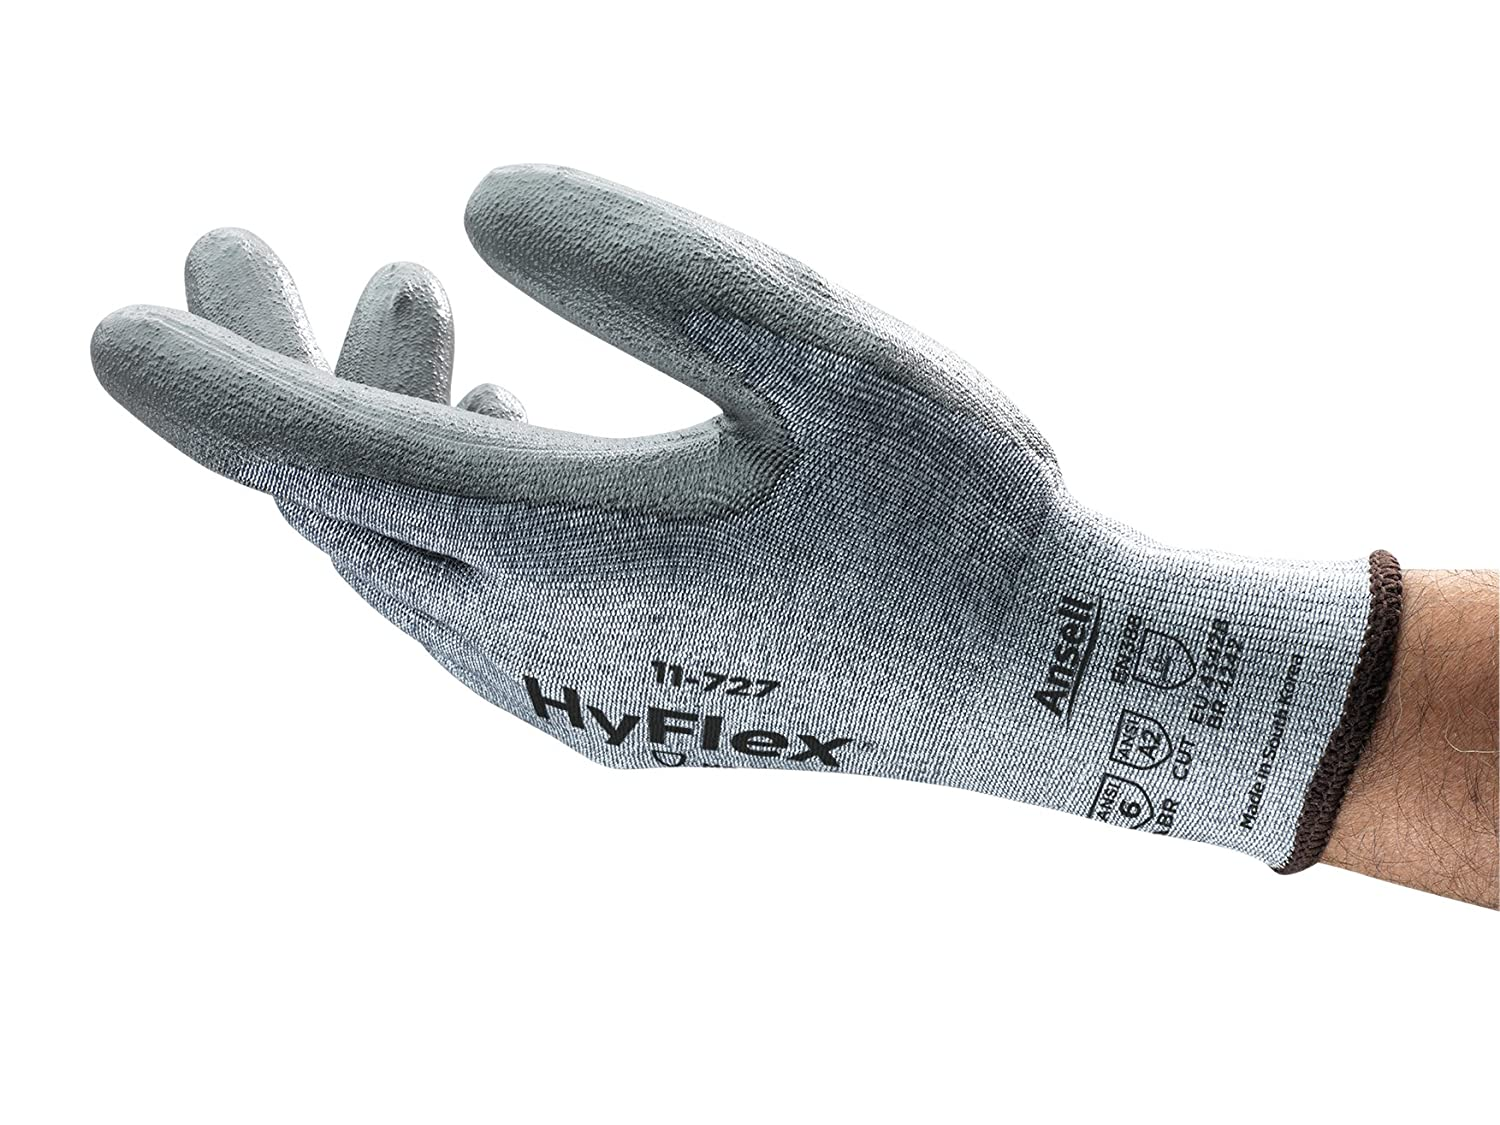 HyFlex 11-727 Cut Protection Gloves Medium Our shop OFFers the best service Duty - Max 78% OFF Abrasion resi